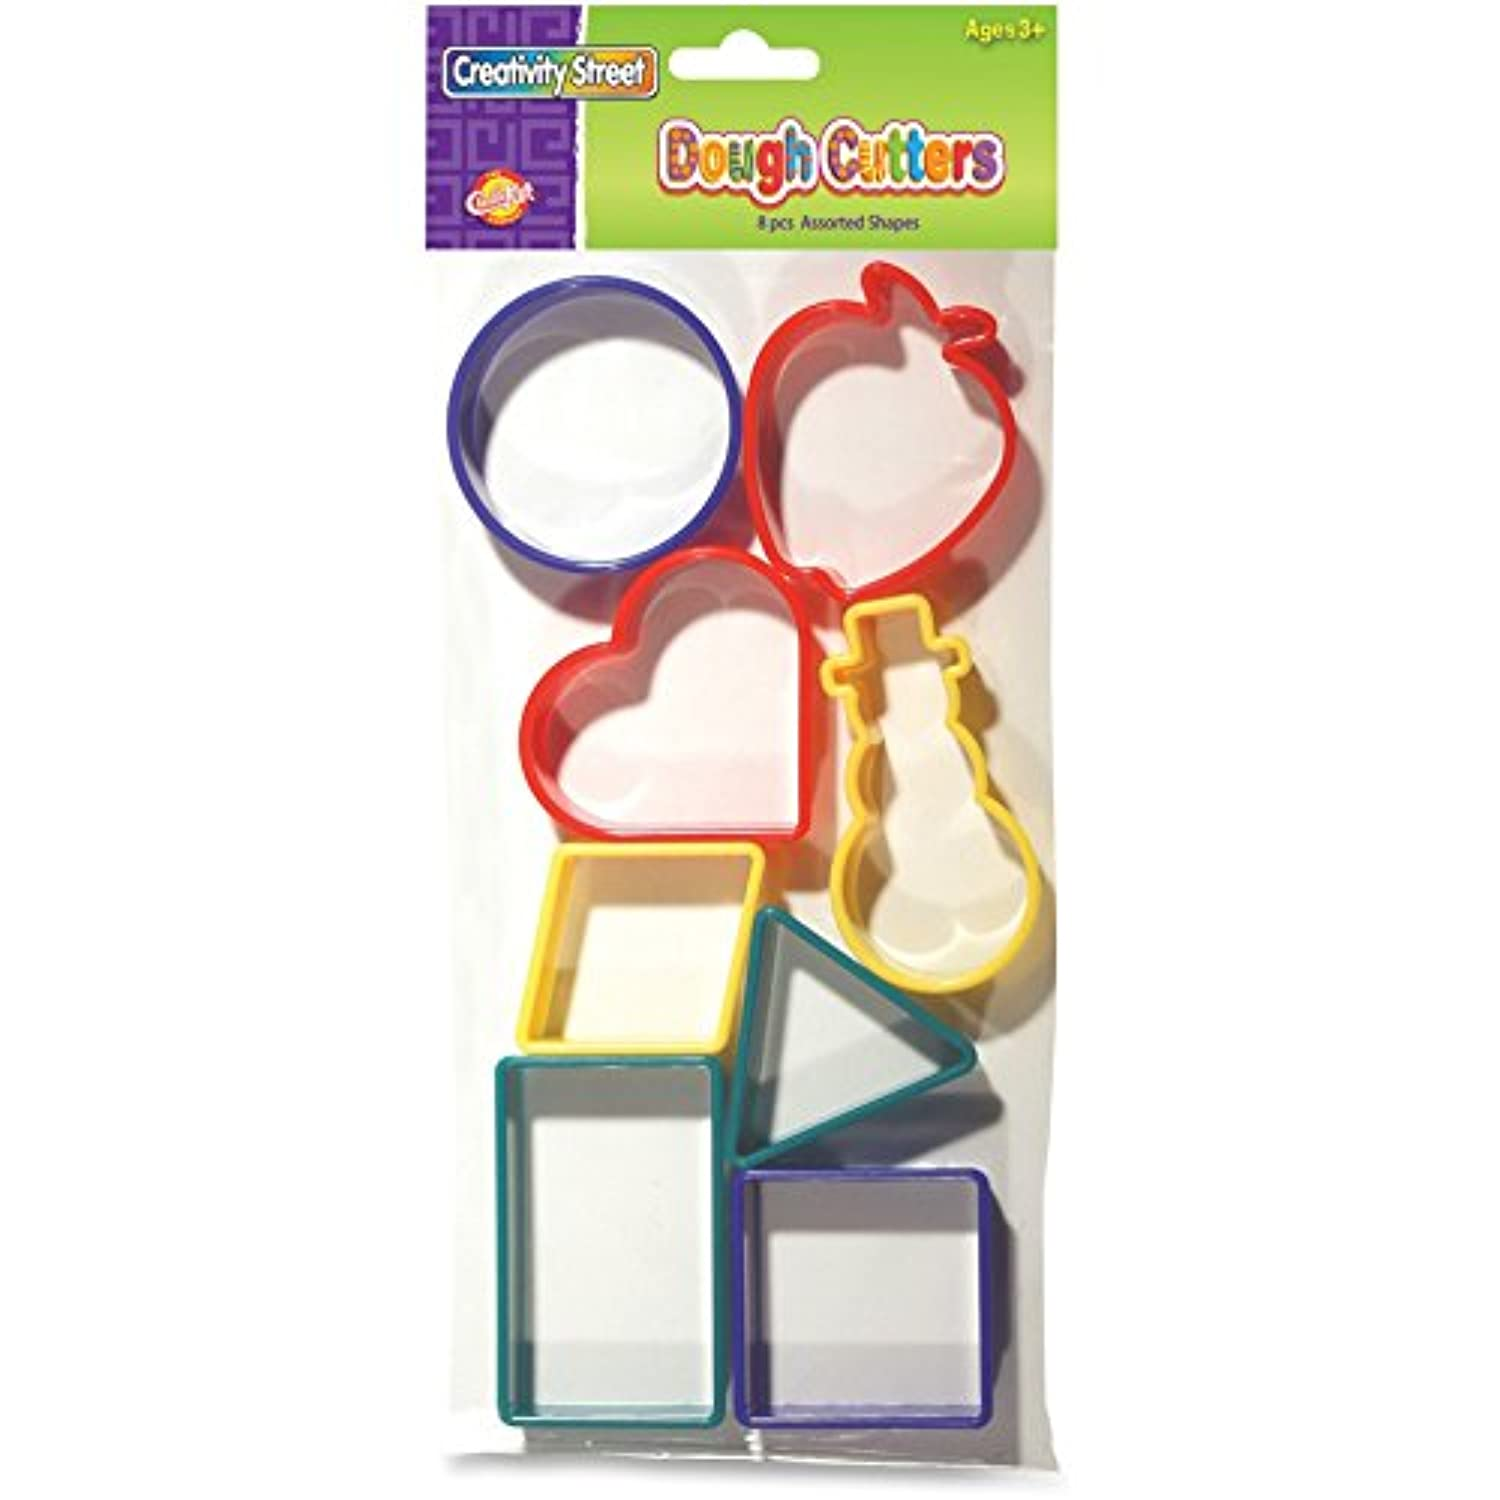 Chenille Kraft CKC9765 Shapes Dough Cutters Clay44; 8 Count - Assorted Color